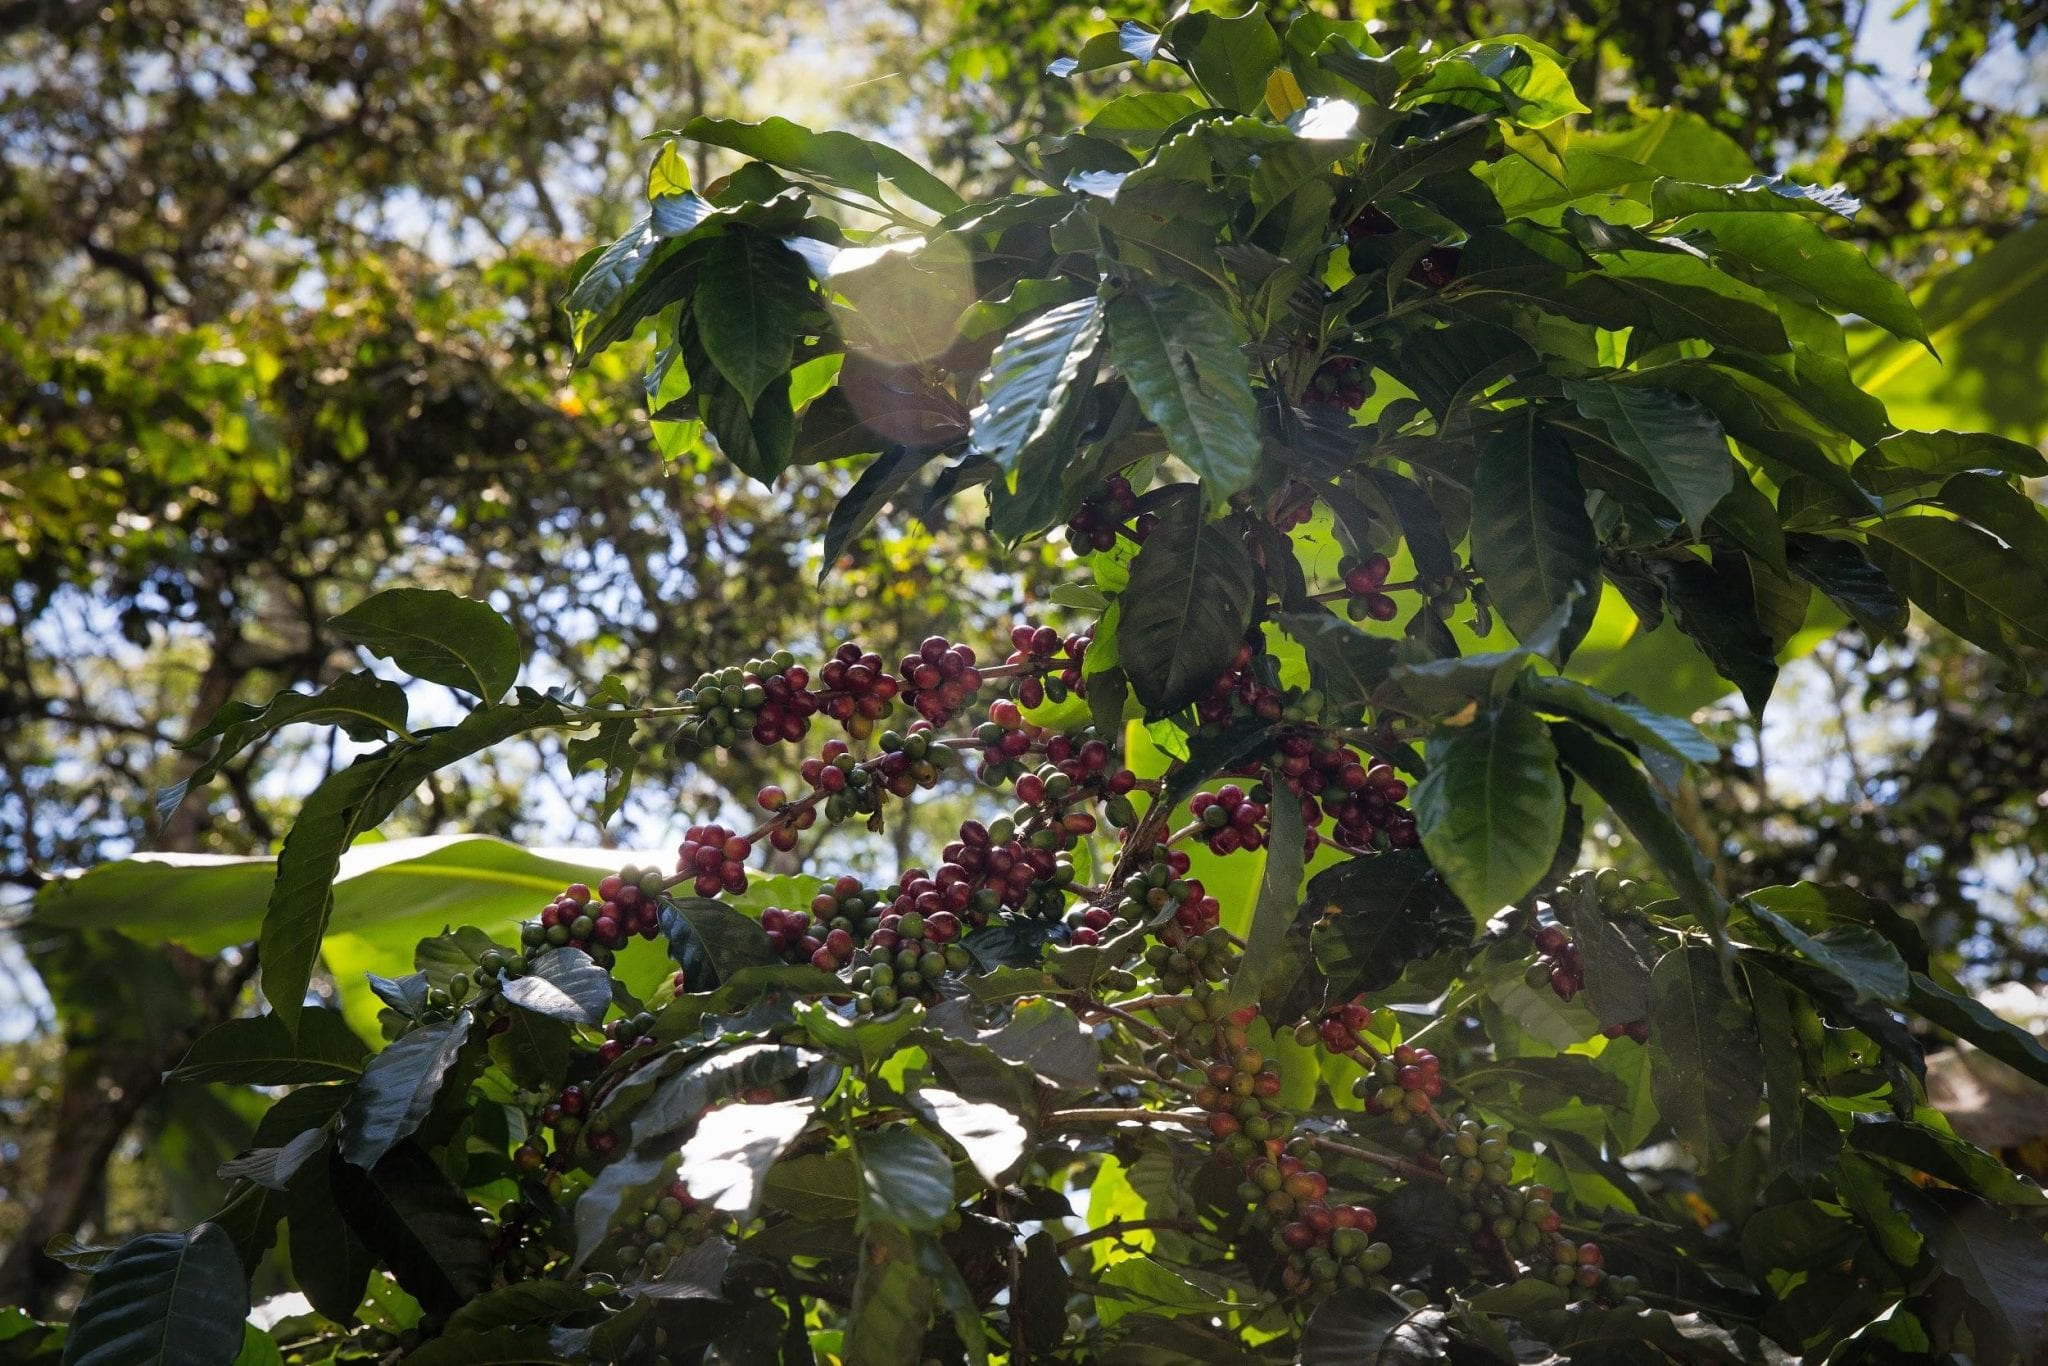 some coffee cherries still in the tree